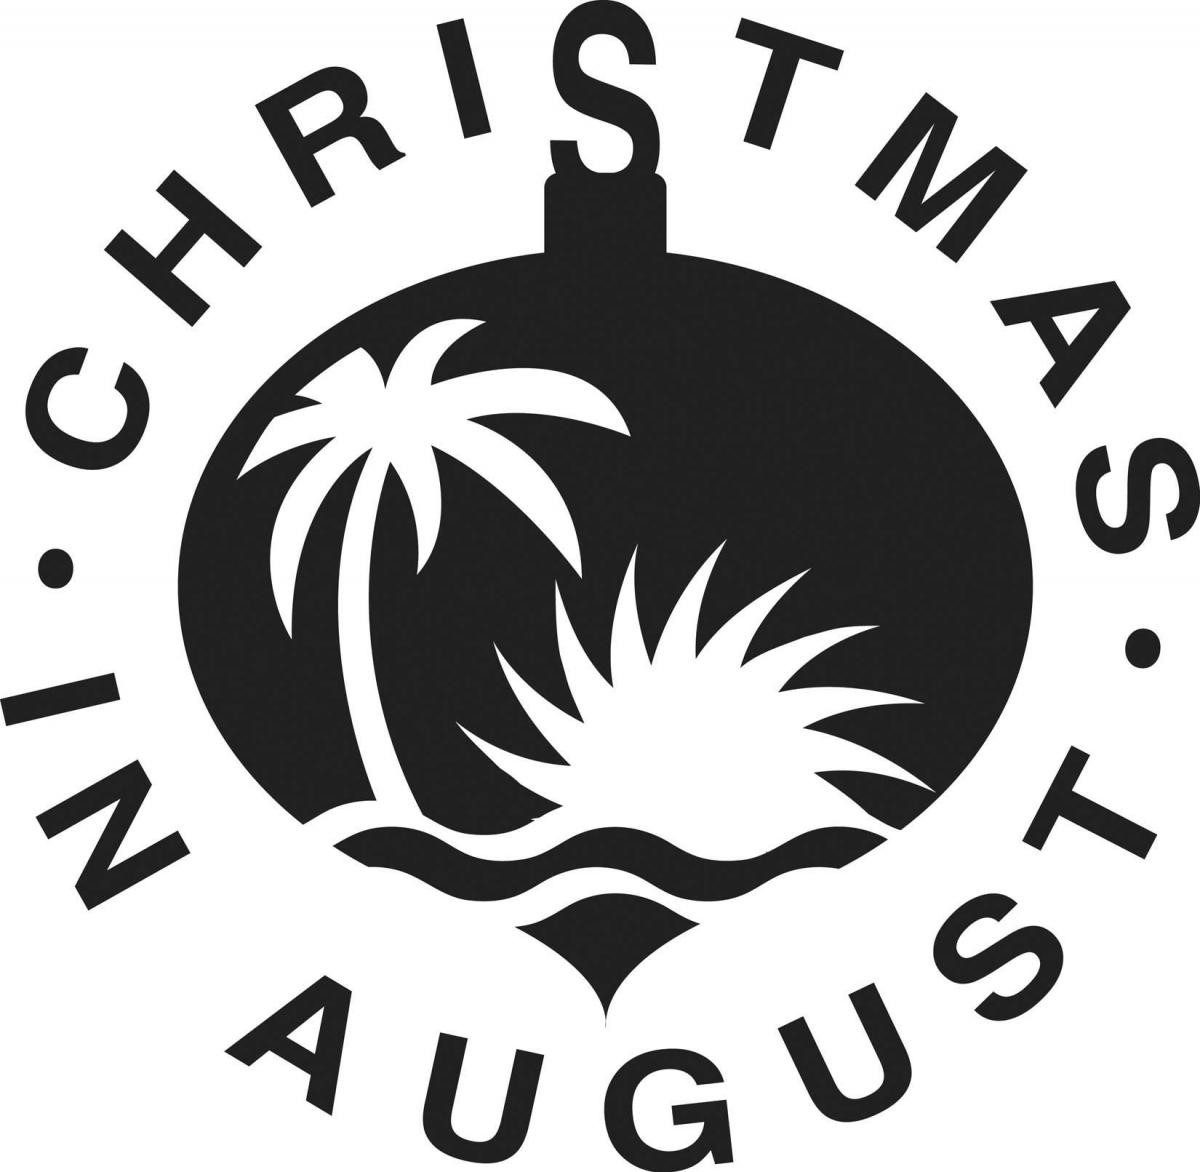 Christmas in august clipart clip art royalty free download Christmas In August Logo BW Clip Art | Trenmay.com clip art royalty free download